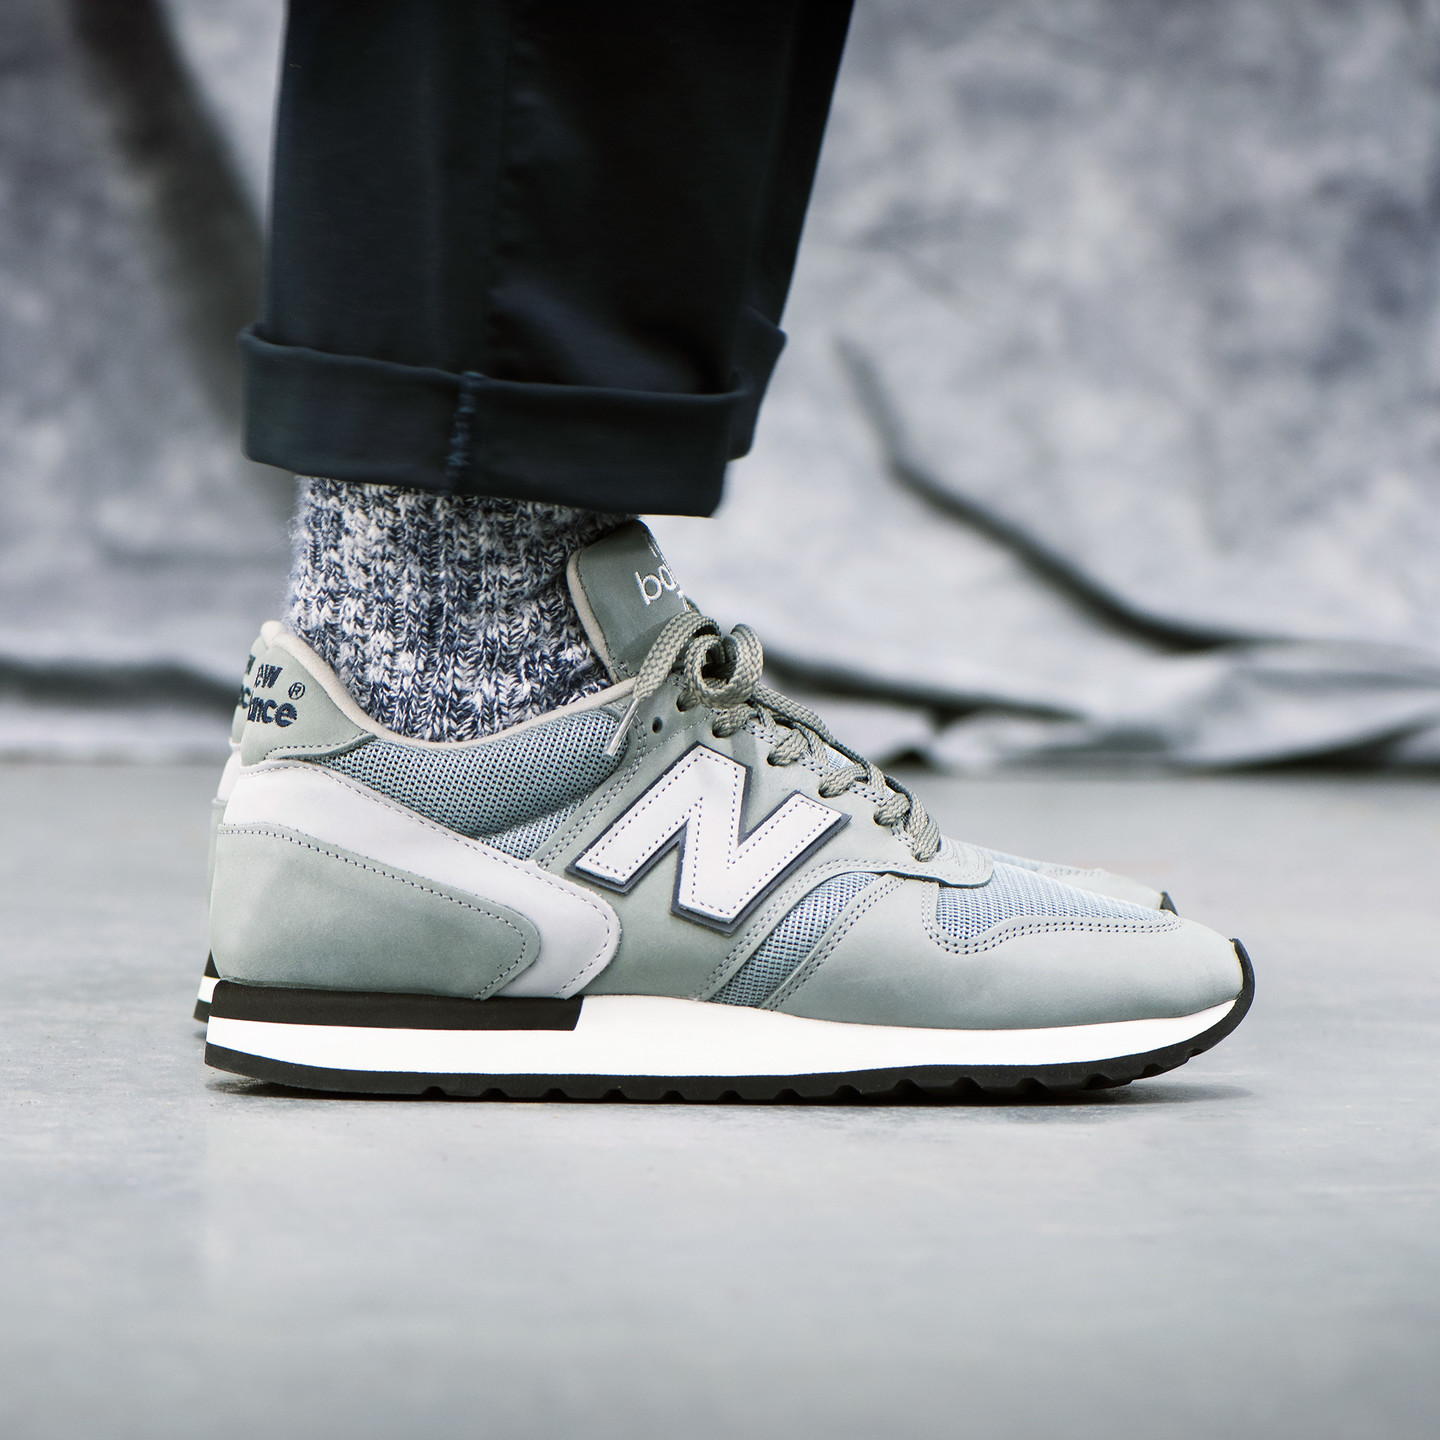 New Balance M770 FA - 35th Anniversary Grey / Navy / Light Grey M770FA